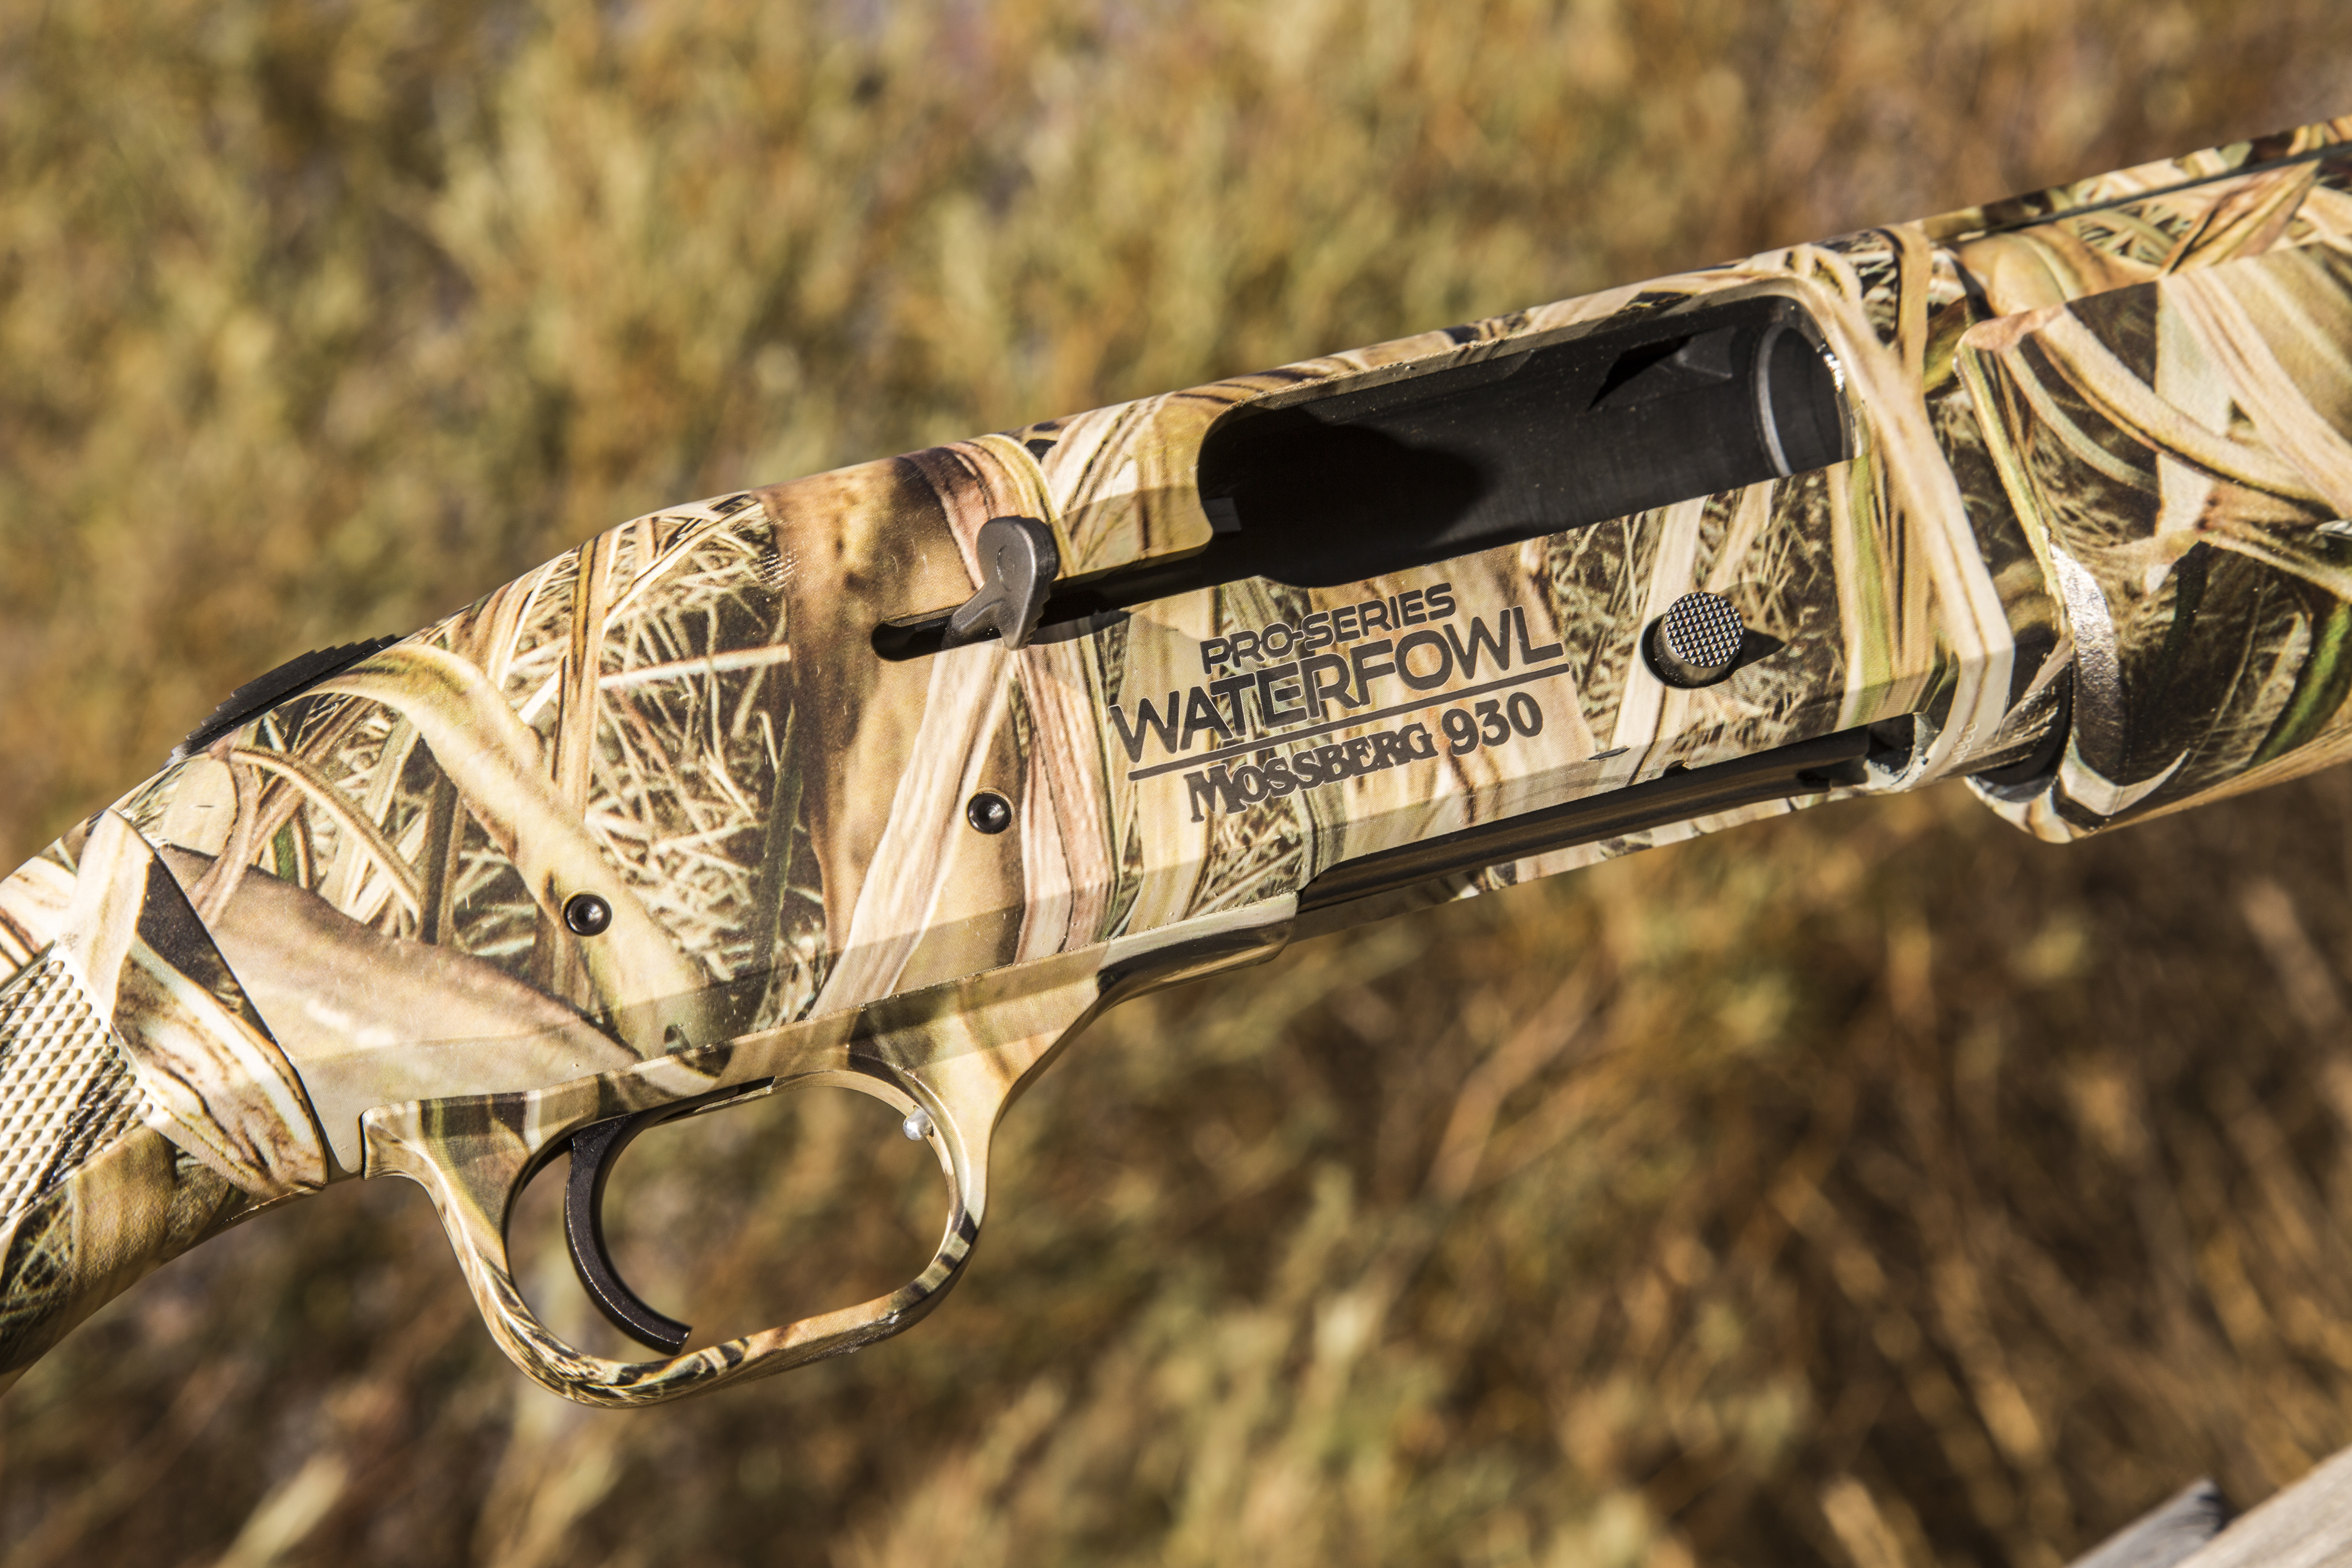 Mossberg's Waterfowl Slayer — The 930 Pro-Series Waterfowl